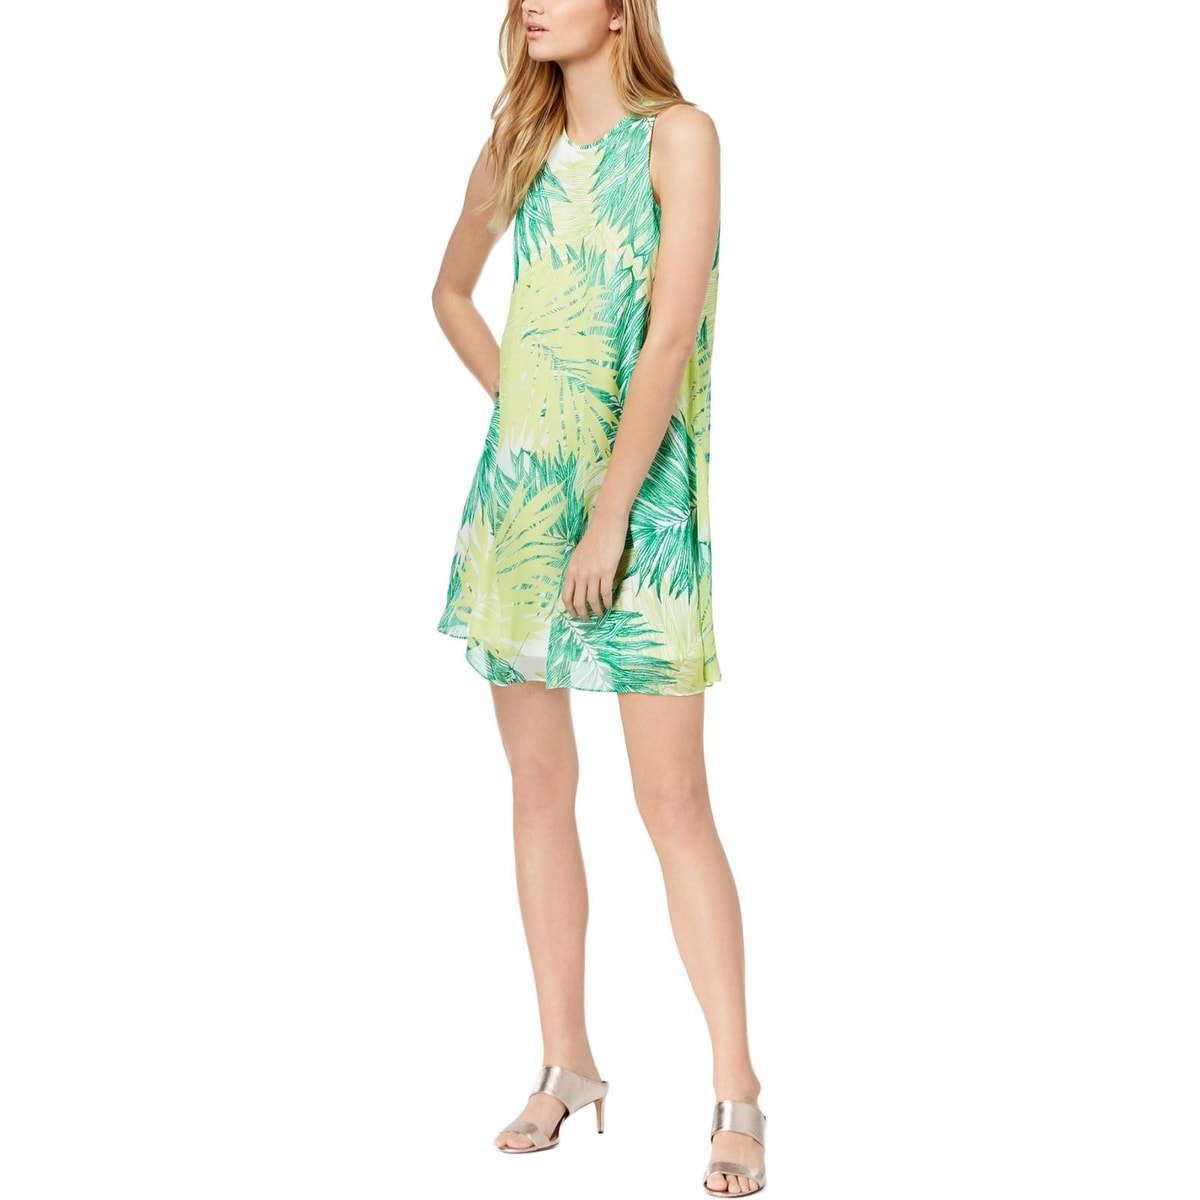 784dfde6 Calvin Klein Dresses | Find Great Women's Clothing Deals Shopping at  Overstock